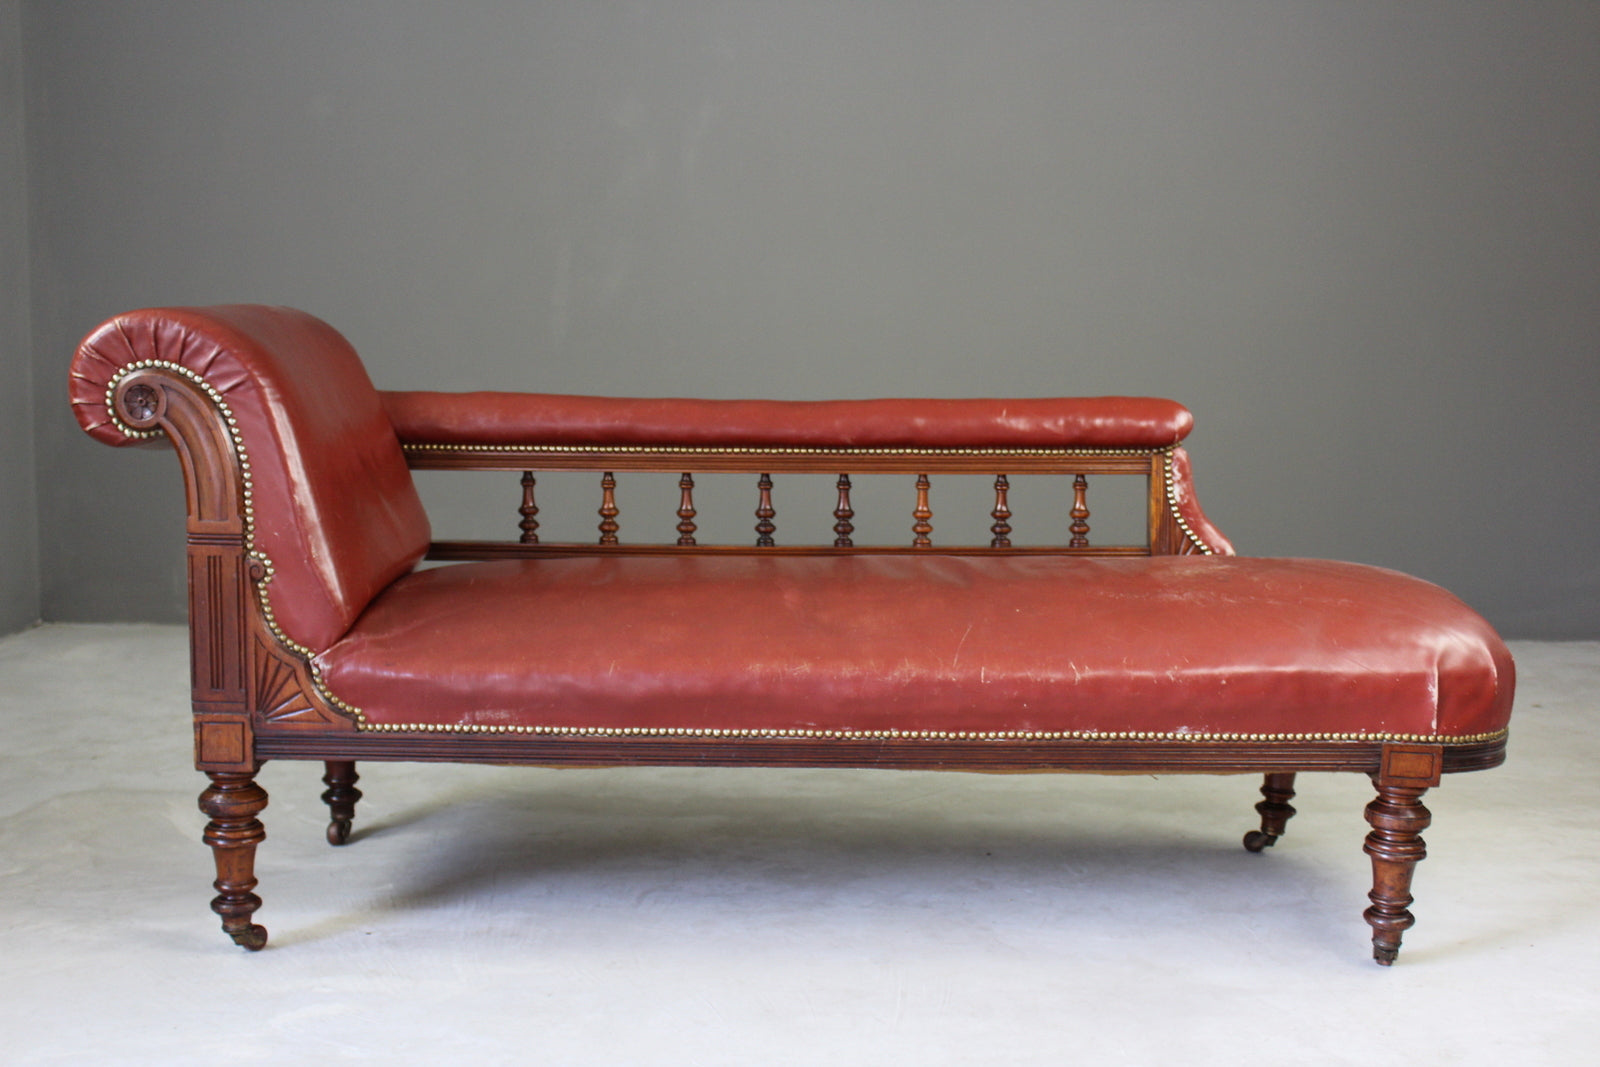 Antique Leather Leather Chaise Antique Longue wZiXPkTlOu